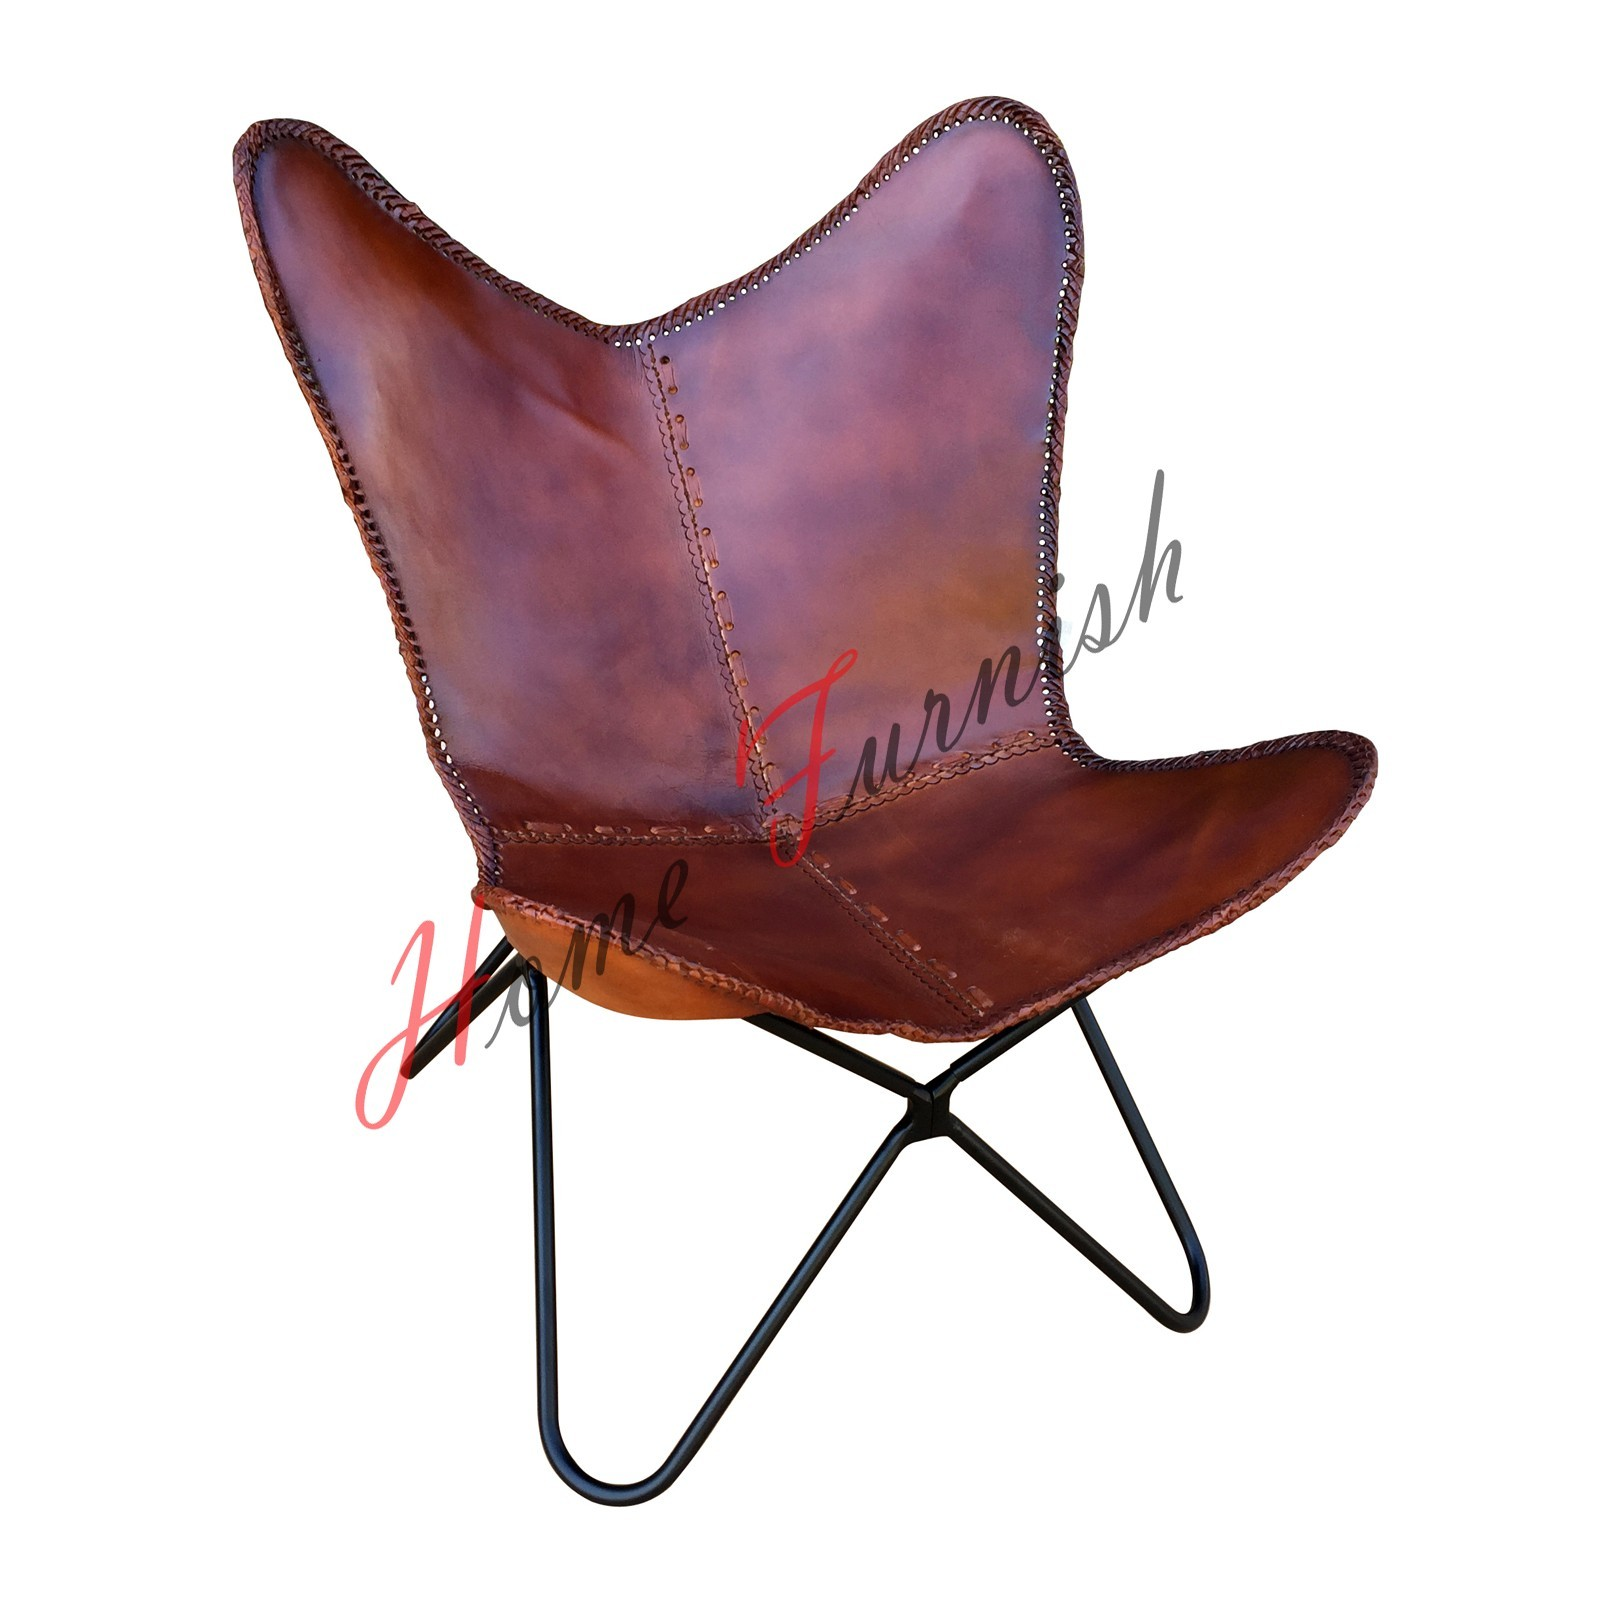 Butterfly Chair BKF Genuine Leather Chairs Butterfly Handmade Leather Chair AA  - $220.00